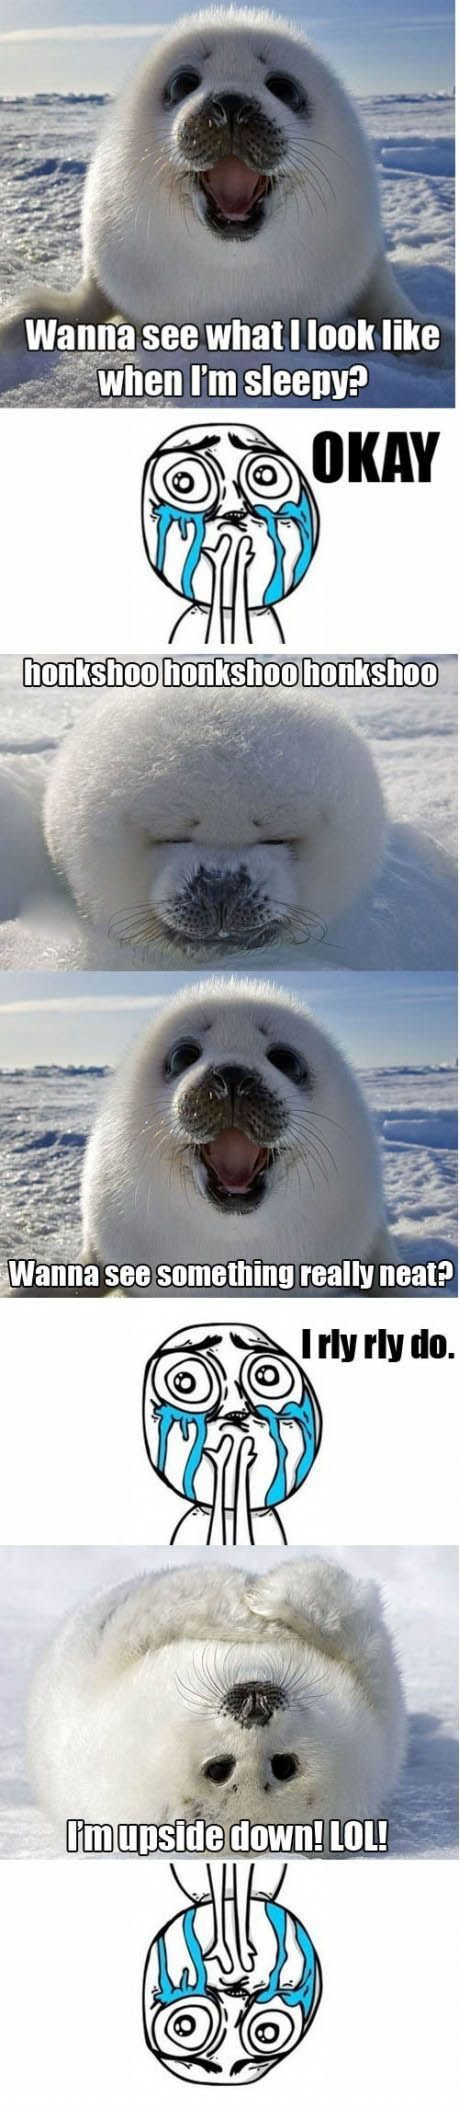 Excuse me while I sob at your adorableness, Mr. Baby Seal.